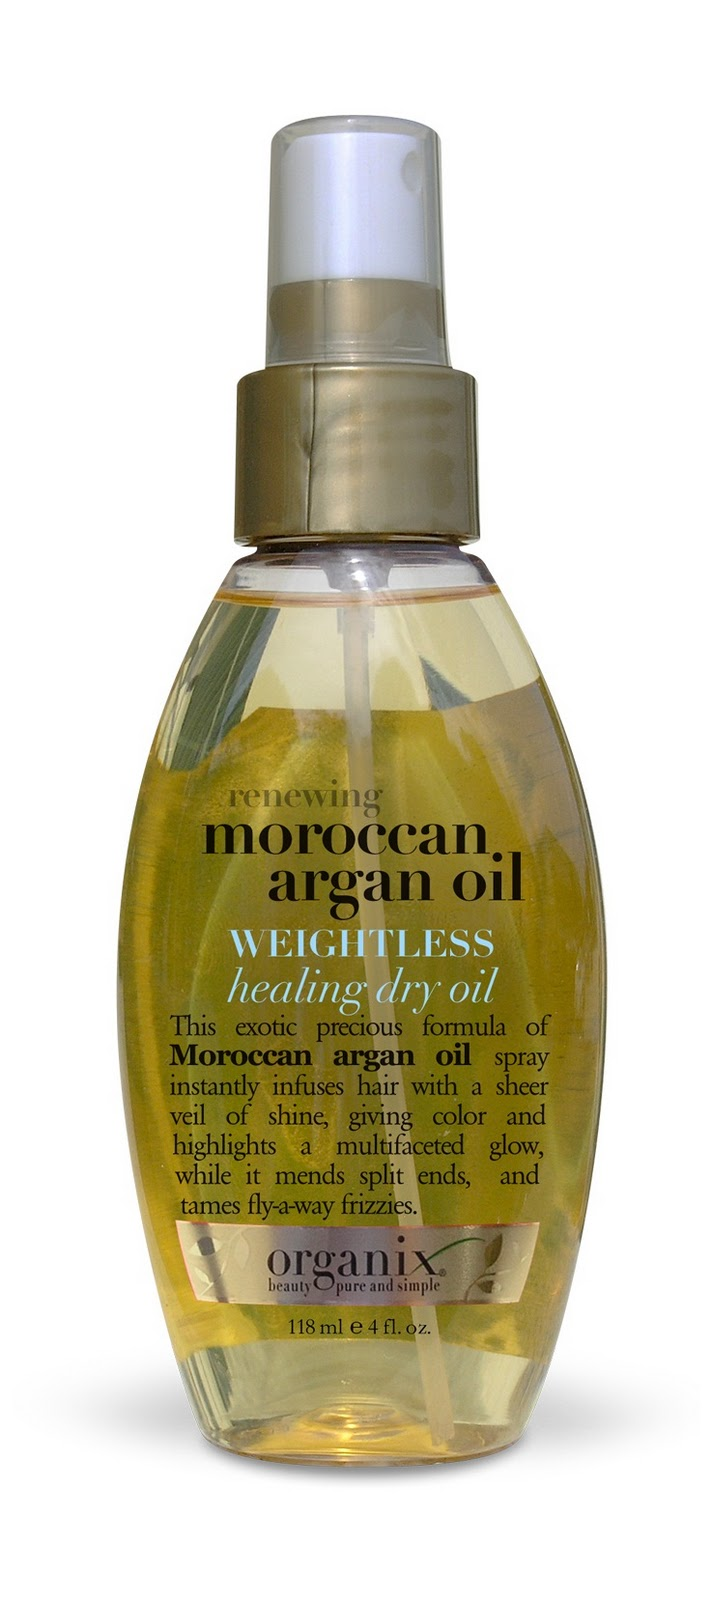 renewing-moroccan-argan-oil-weightless-healing-oil.jpg